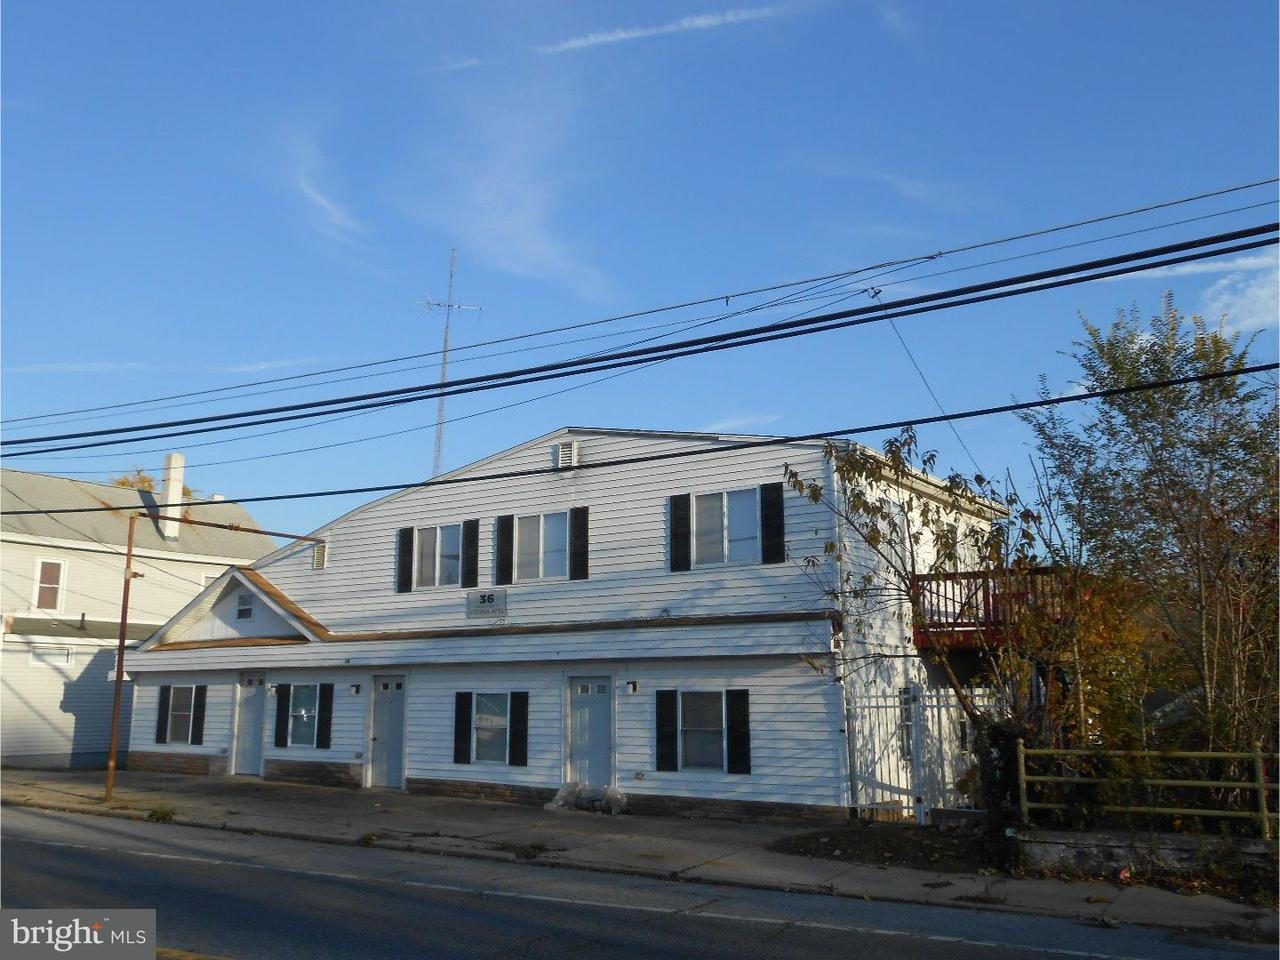 Single Family Home for Sale at 36 MAIN Street Fairton, New Jersey 08302 United States